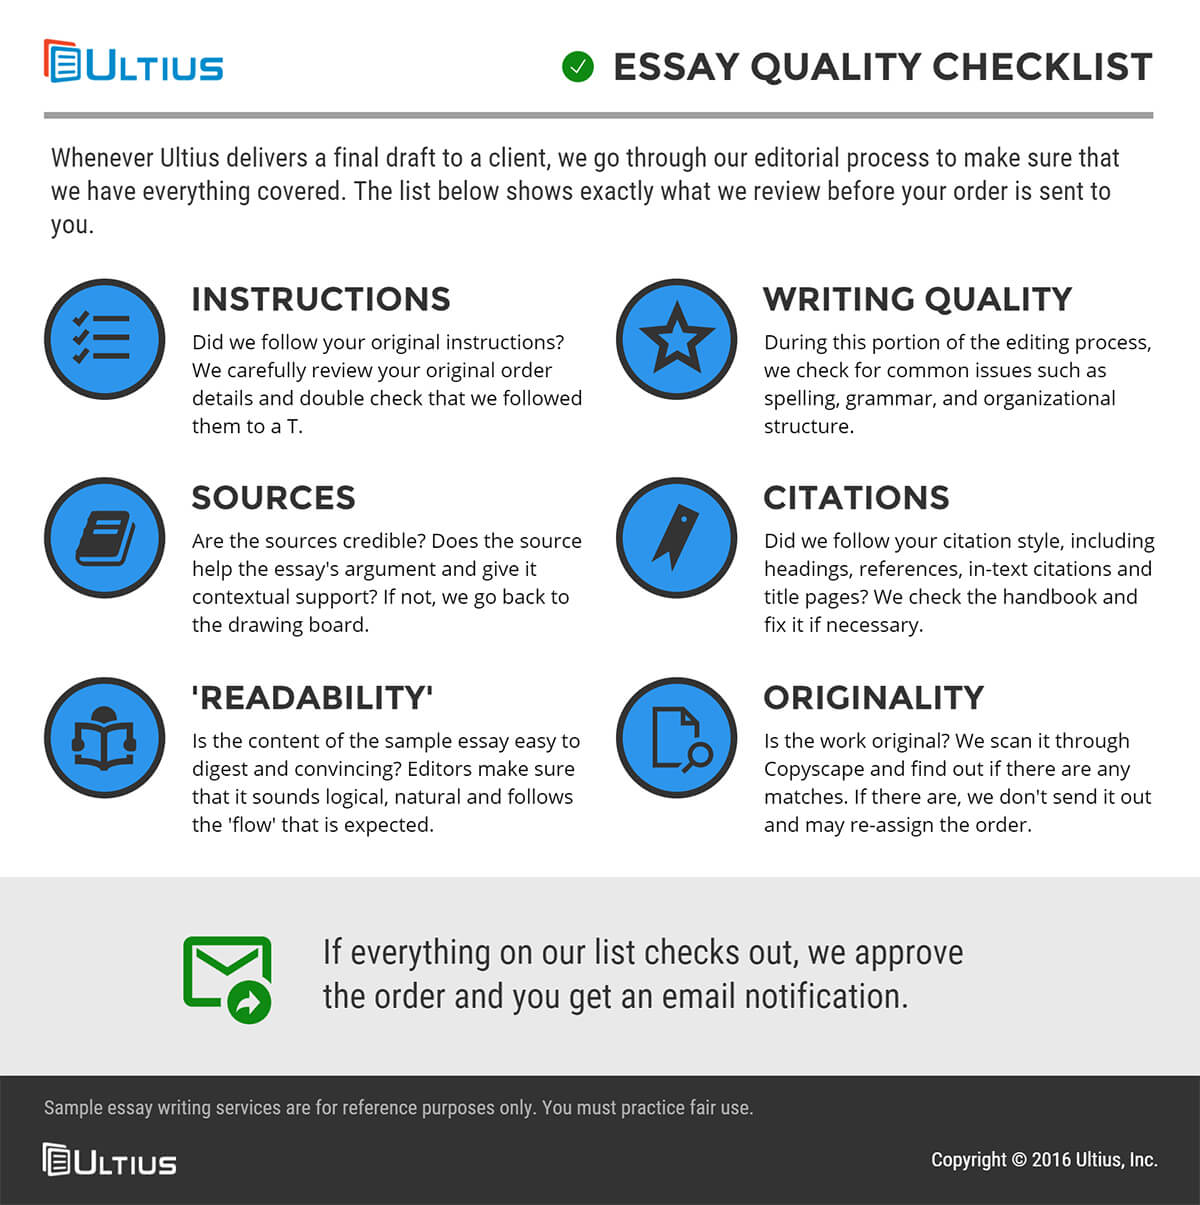 014 Essay Example Purchased Quality Checklist Dreaded Persuasive Definition And Examples Topics For Kids Rubric Full